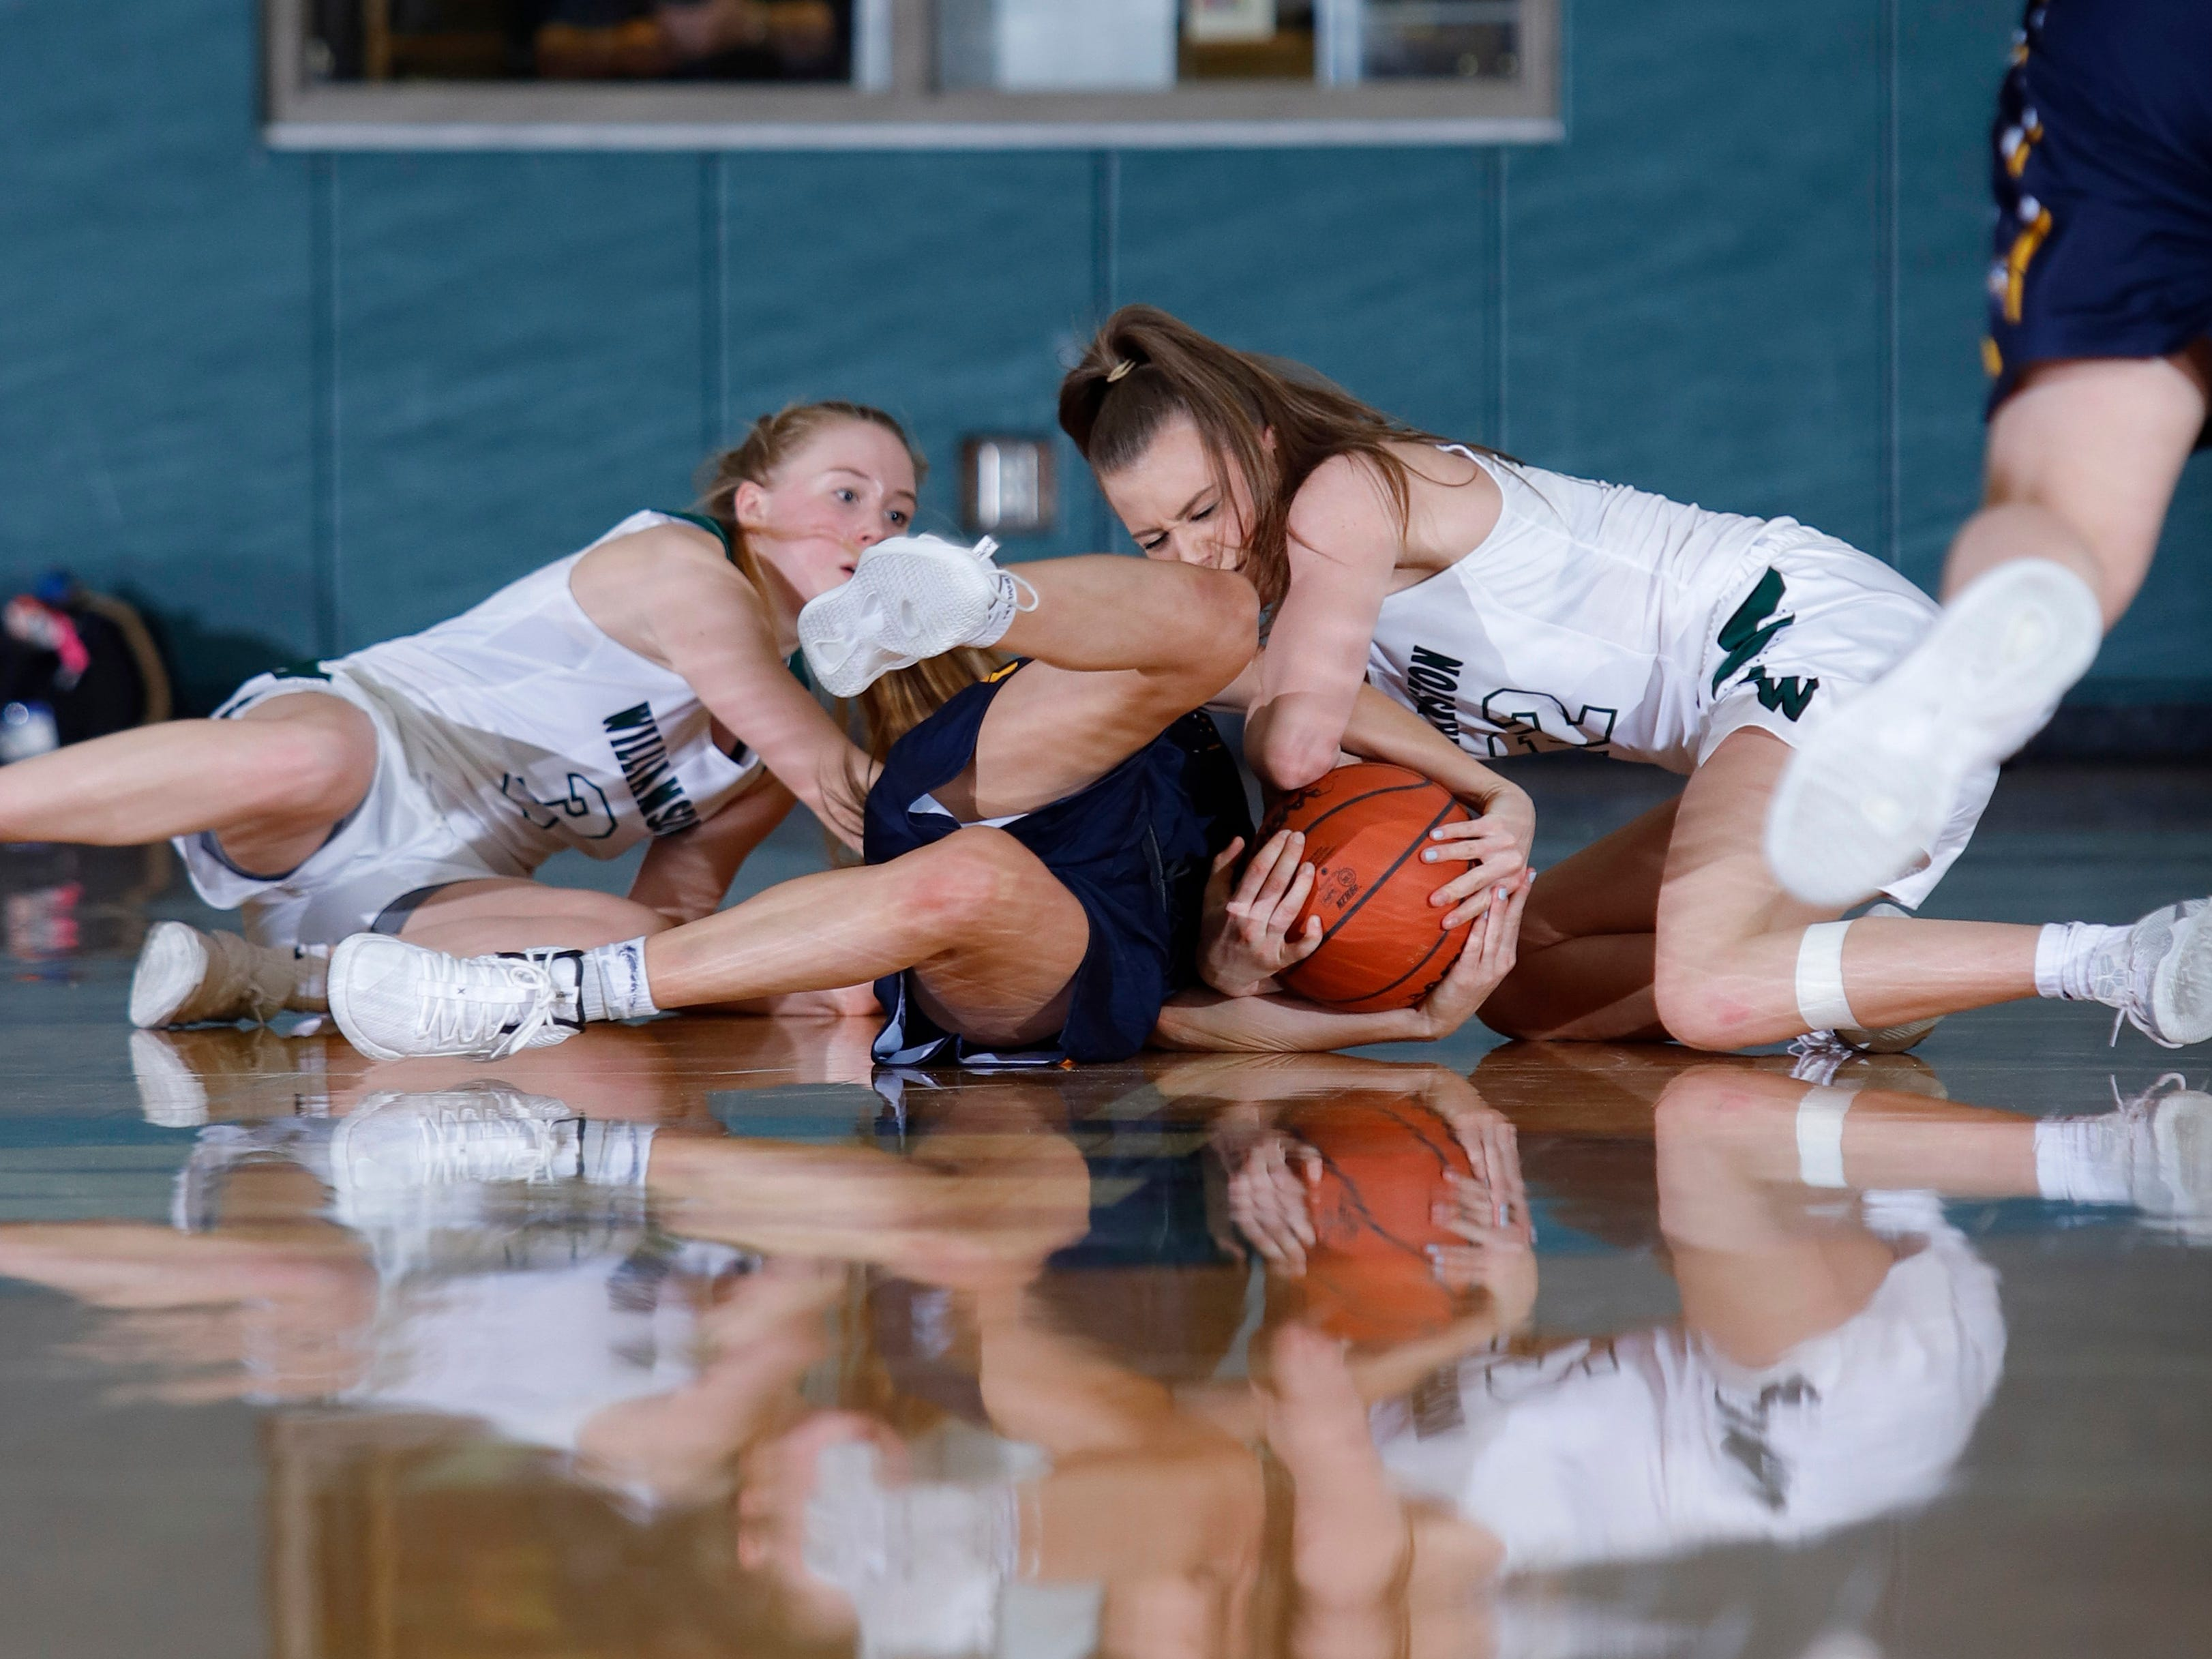 Haslett's Brenna Bailey, center, and Williamston's Kenzie Lewis, right, and Allie Sherrer wrestle for the ball, Friday, Jan. 11, 2019, in Williamston, Mich.